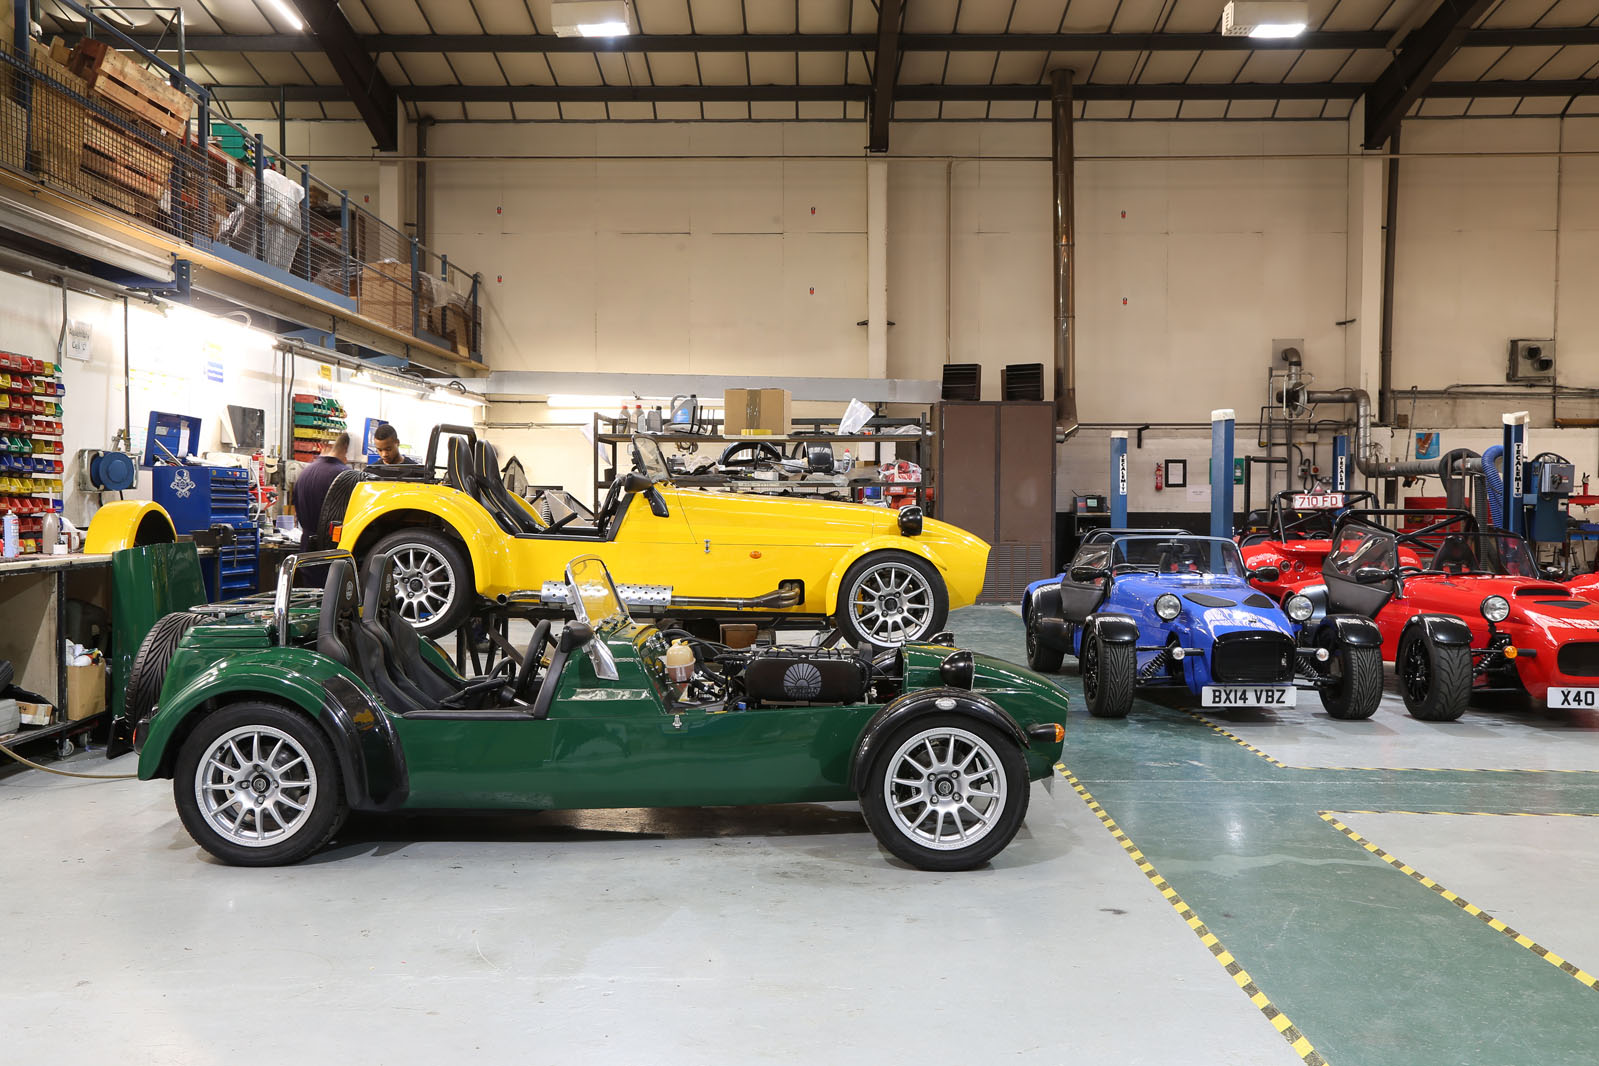 how to build a bike engined kit car